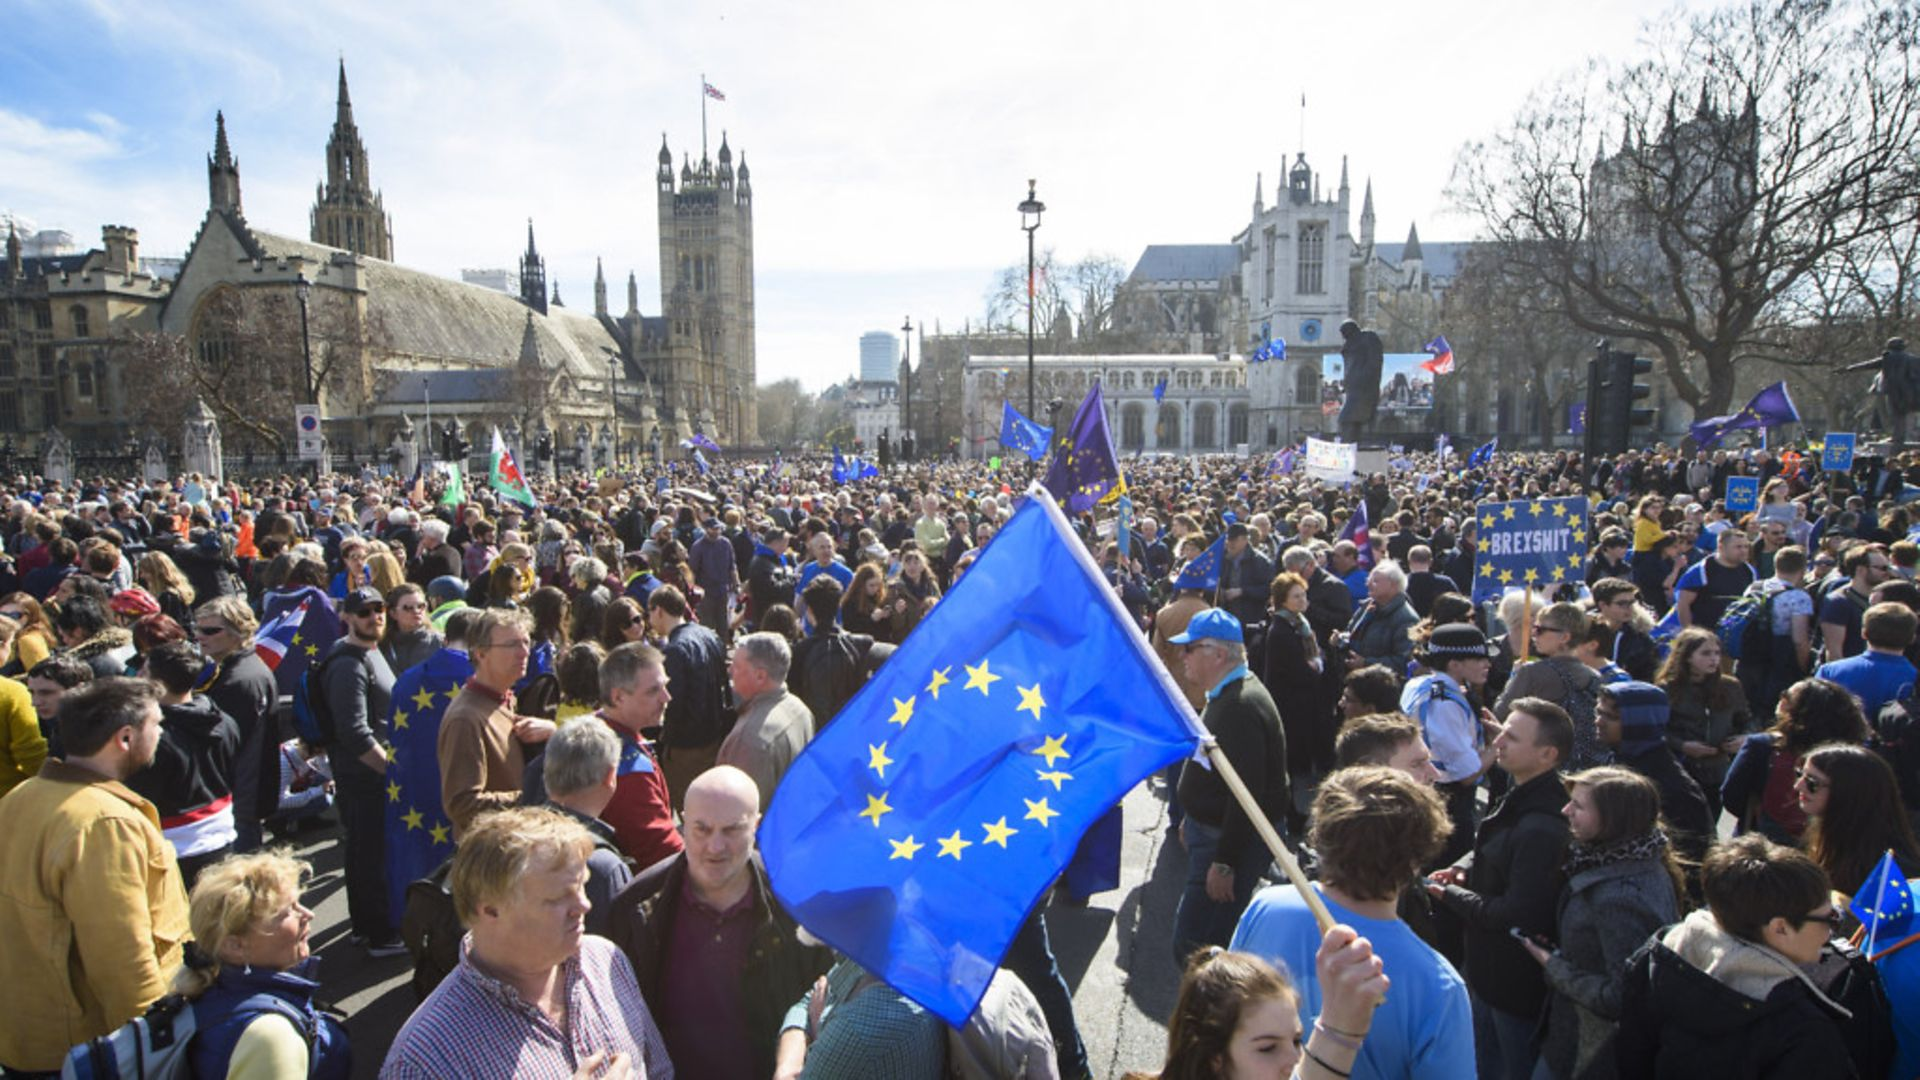 Remainers at a March for Europe event after the EU referendum result - Credit: Empics Entertainment